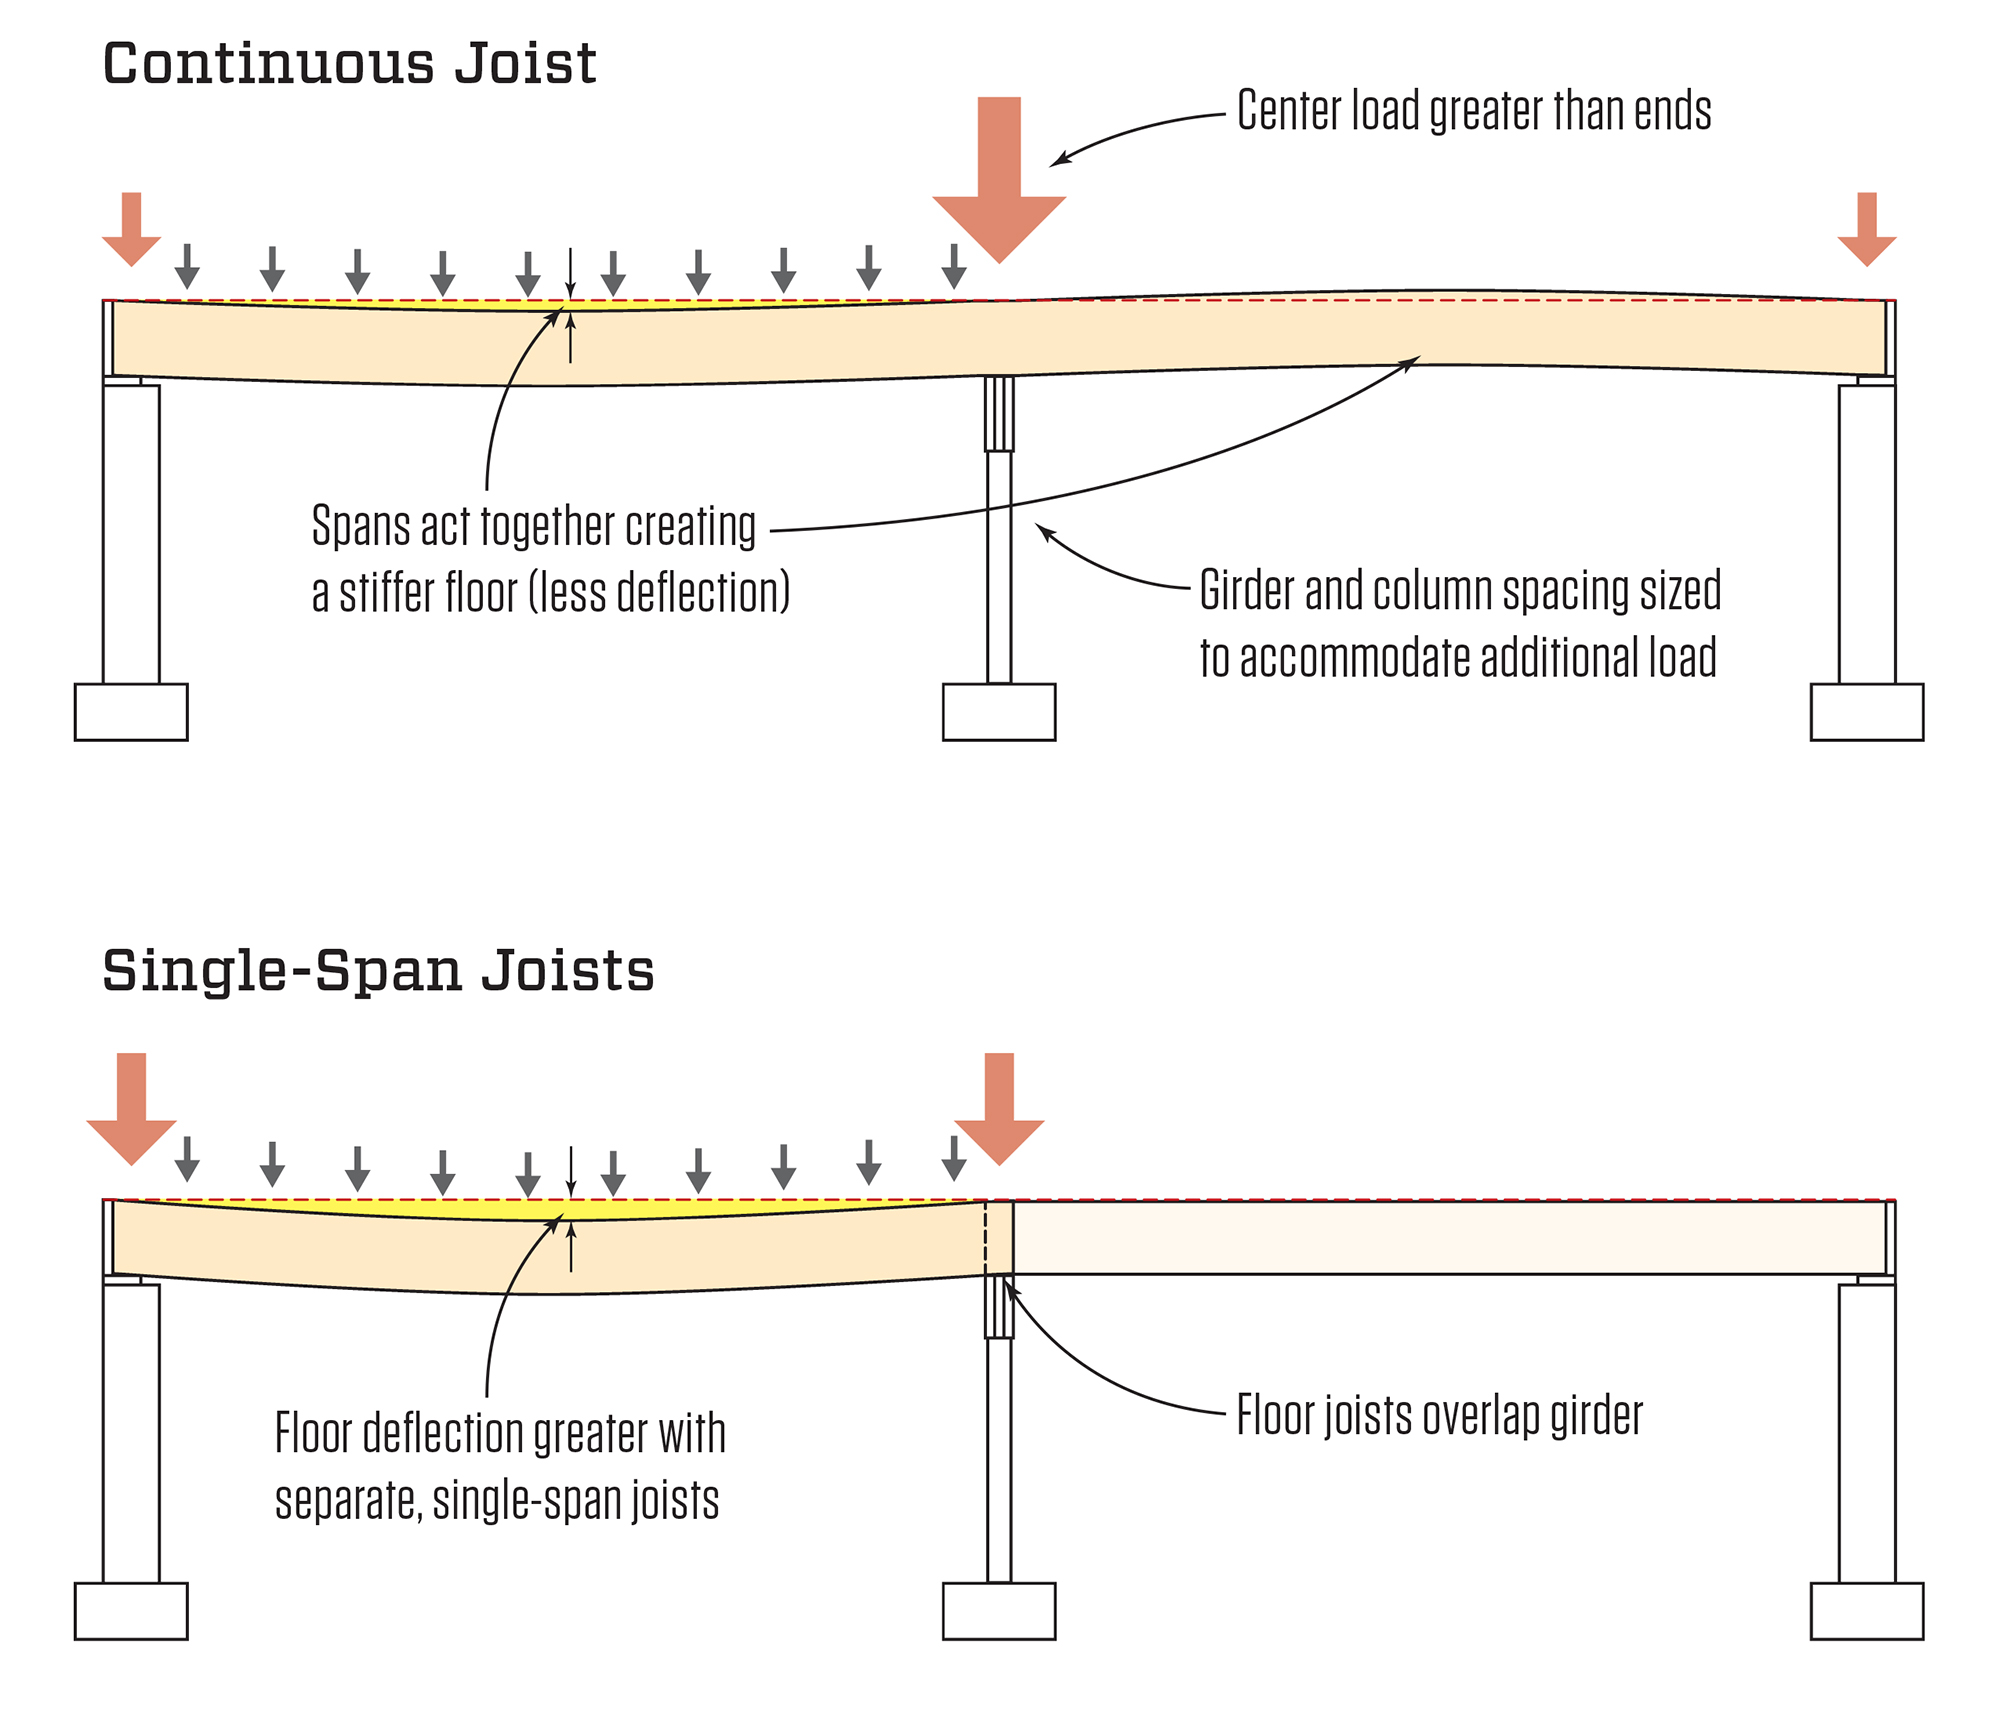 bending moment diagram for simply supported beam wiring 3 way switch with 4 lights continuous vs. single-span joists | jlc online framing, lumber